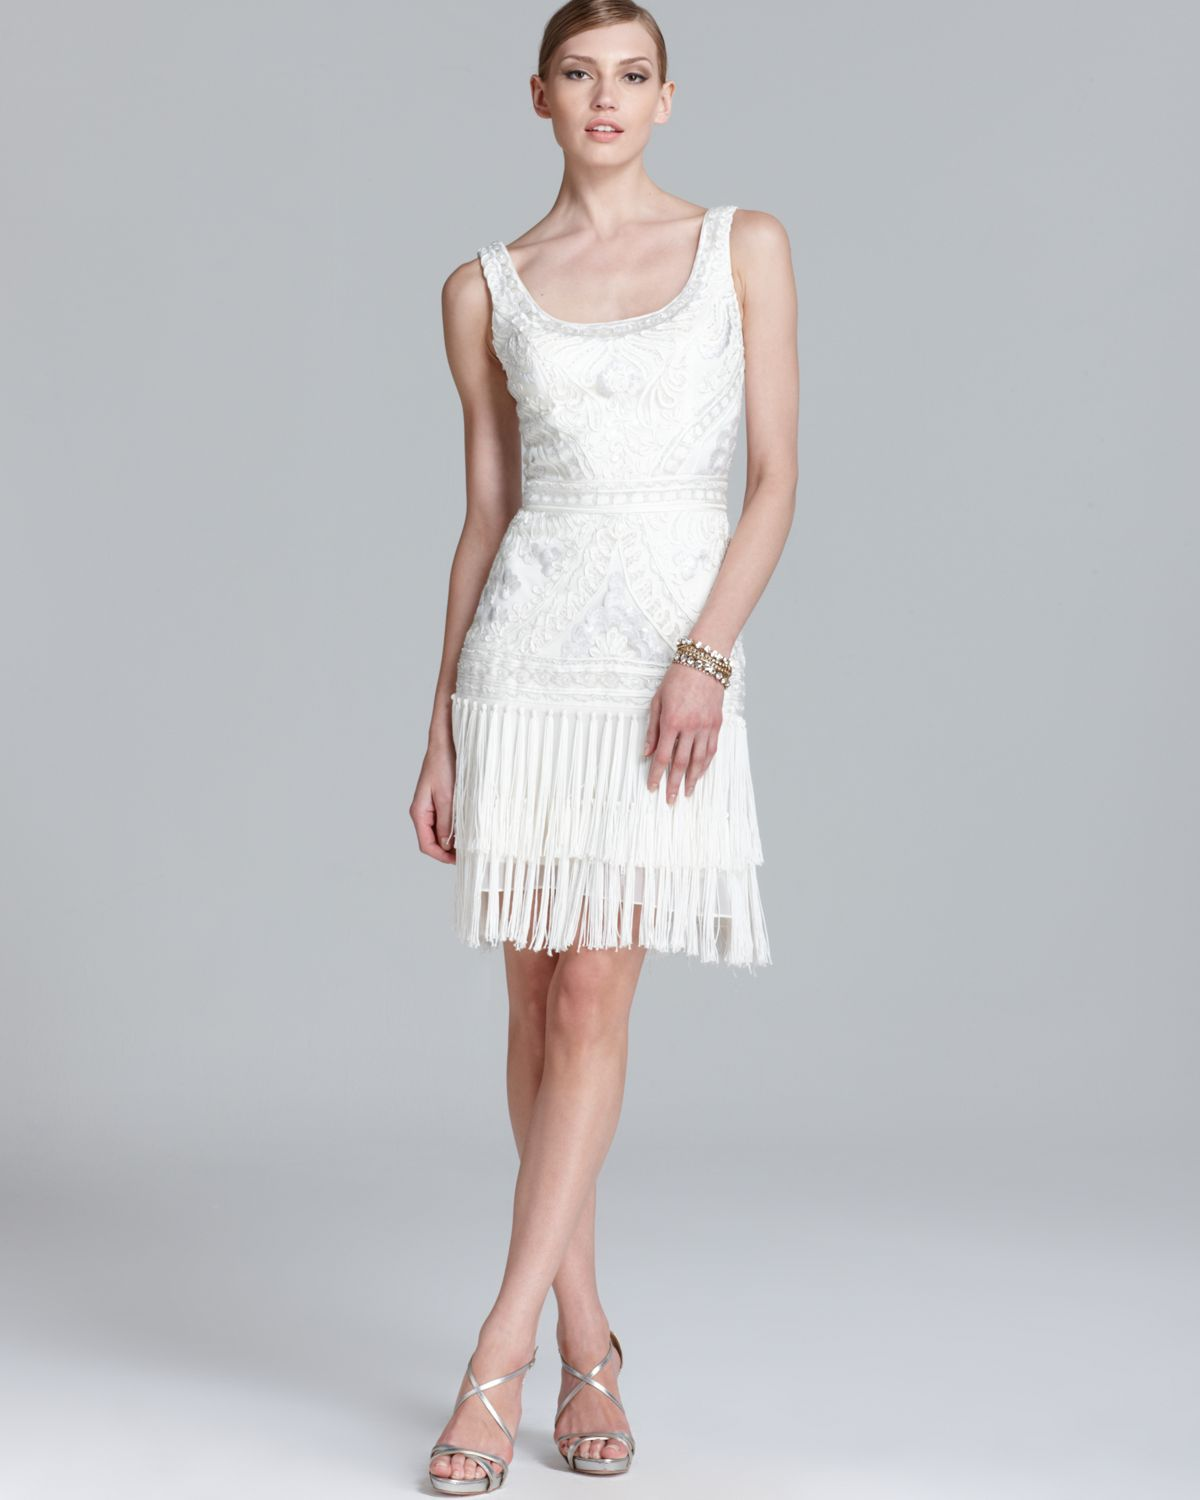 Lyst - Sue Wong Scoop Neck Beaded Dress Sleeveless in White